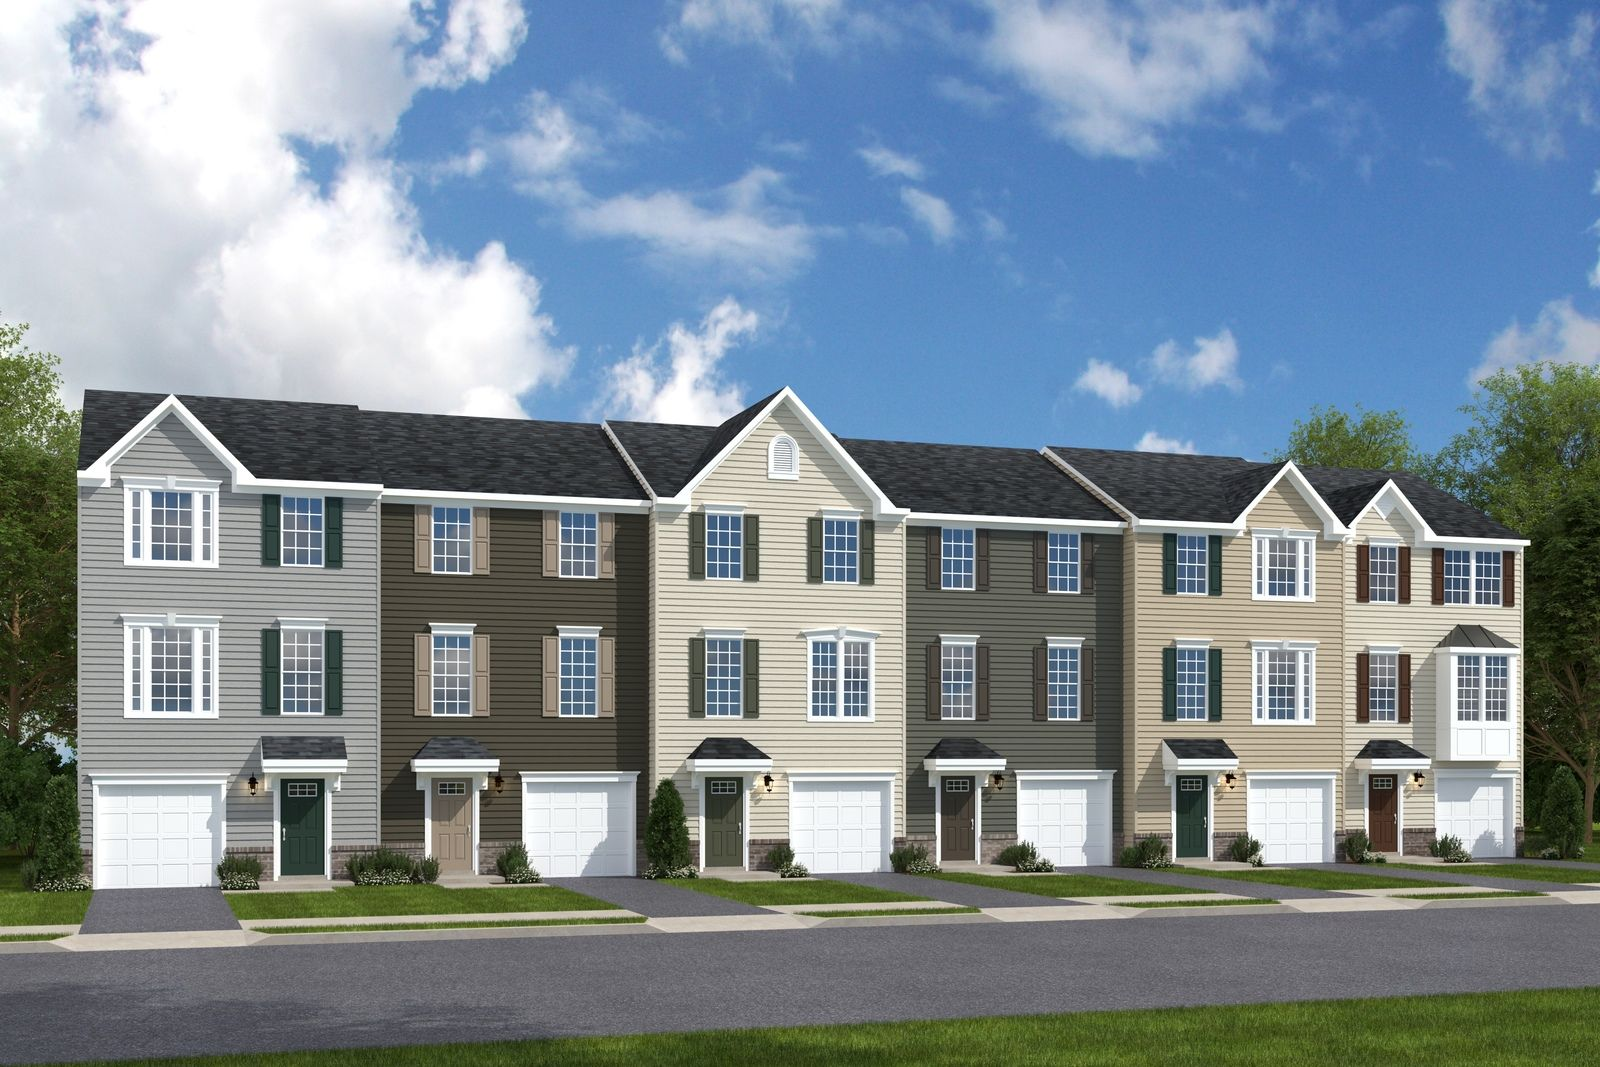 Aspen Woods - New Townhomes Coming Early 2021:The most affordable 3 bedroom townhomes in Union Township! Located inside the I-275 loop near Rt. 32. Starting from the upper $100s. Stay up-to-date with community news & join the VIP List here!